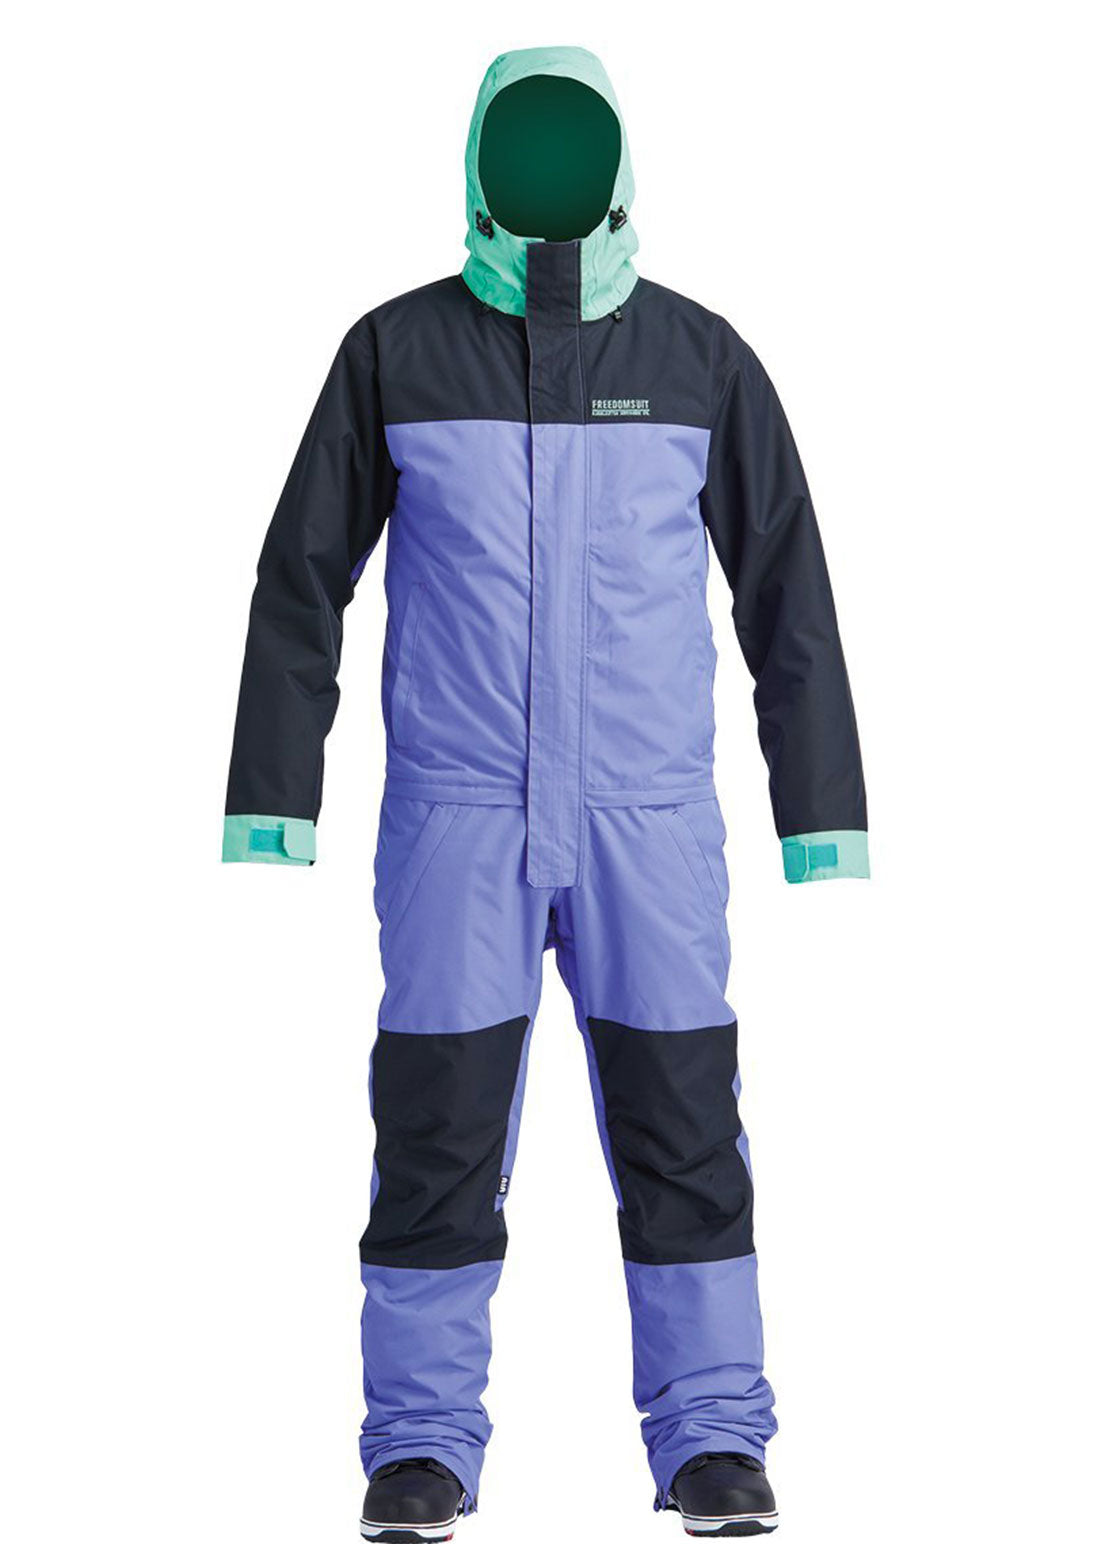 Airblaster Men's Insulated Freedom Suit Max Warbington